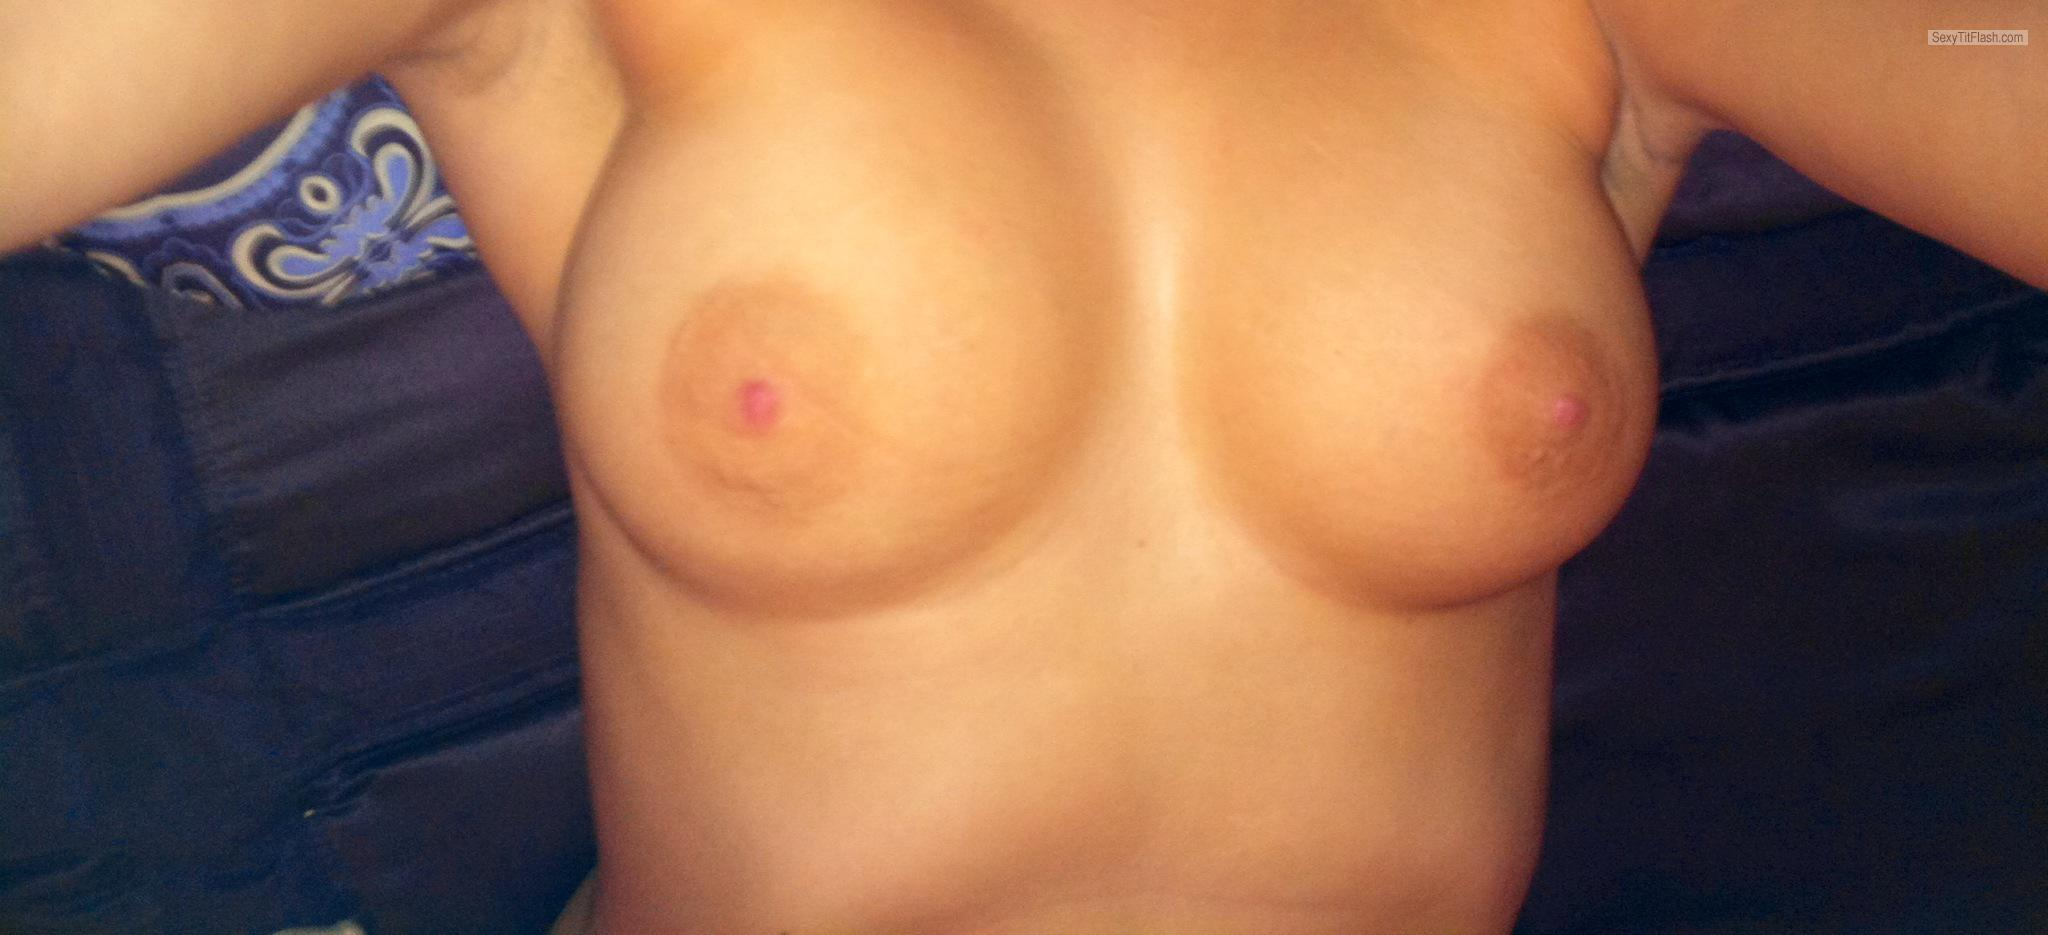 Medium Tits Of A Friend Selfie by Ali